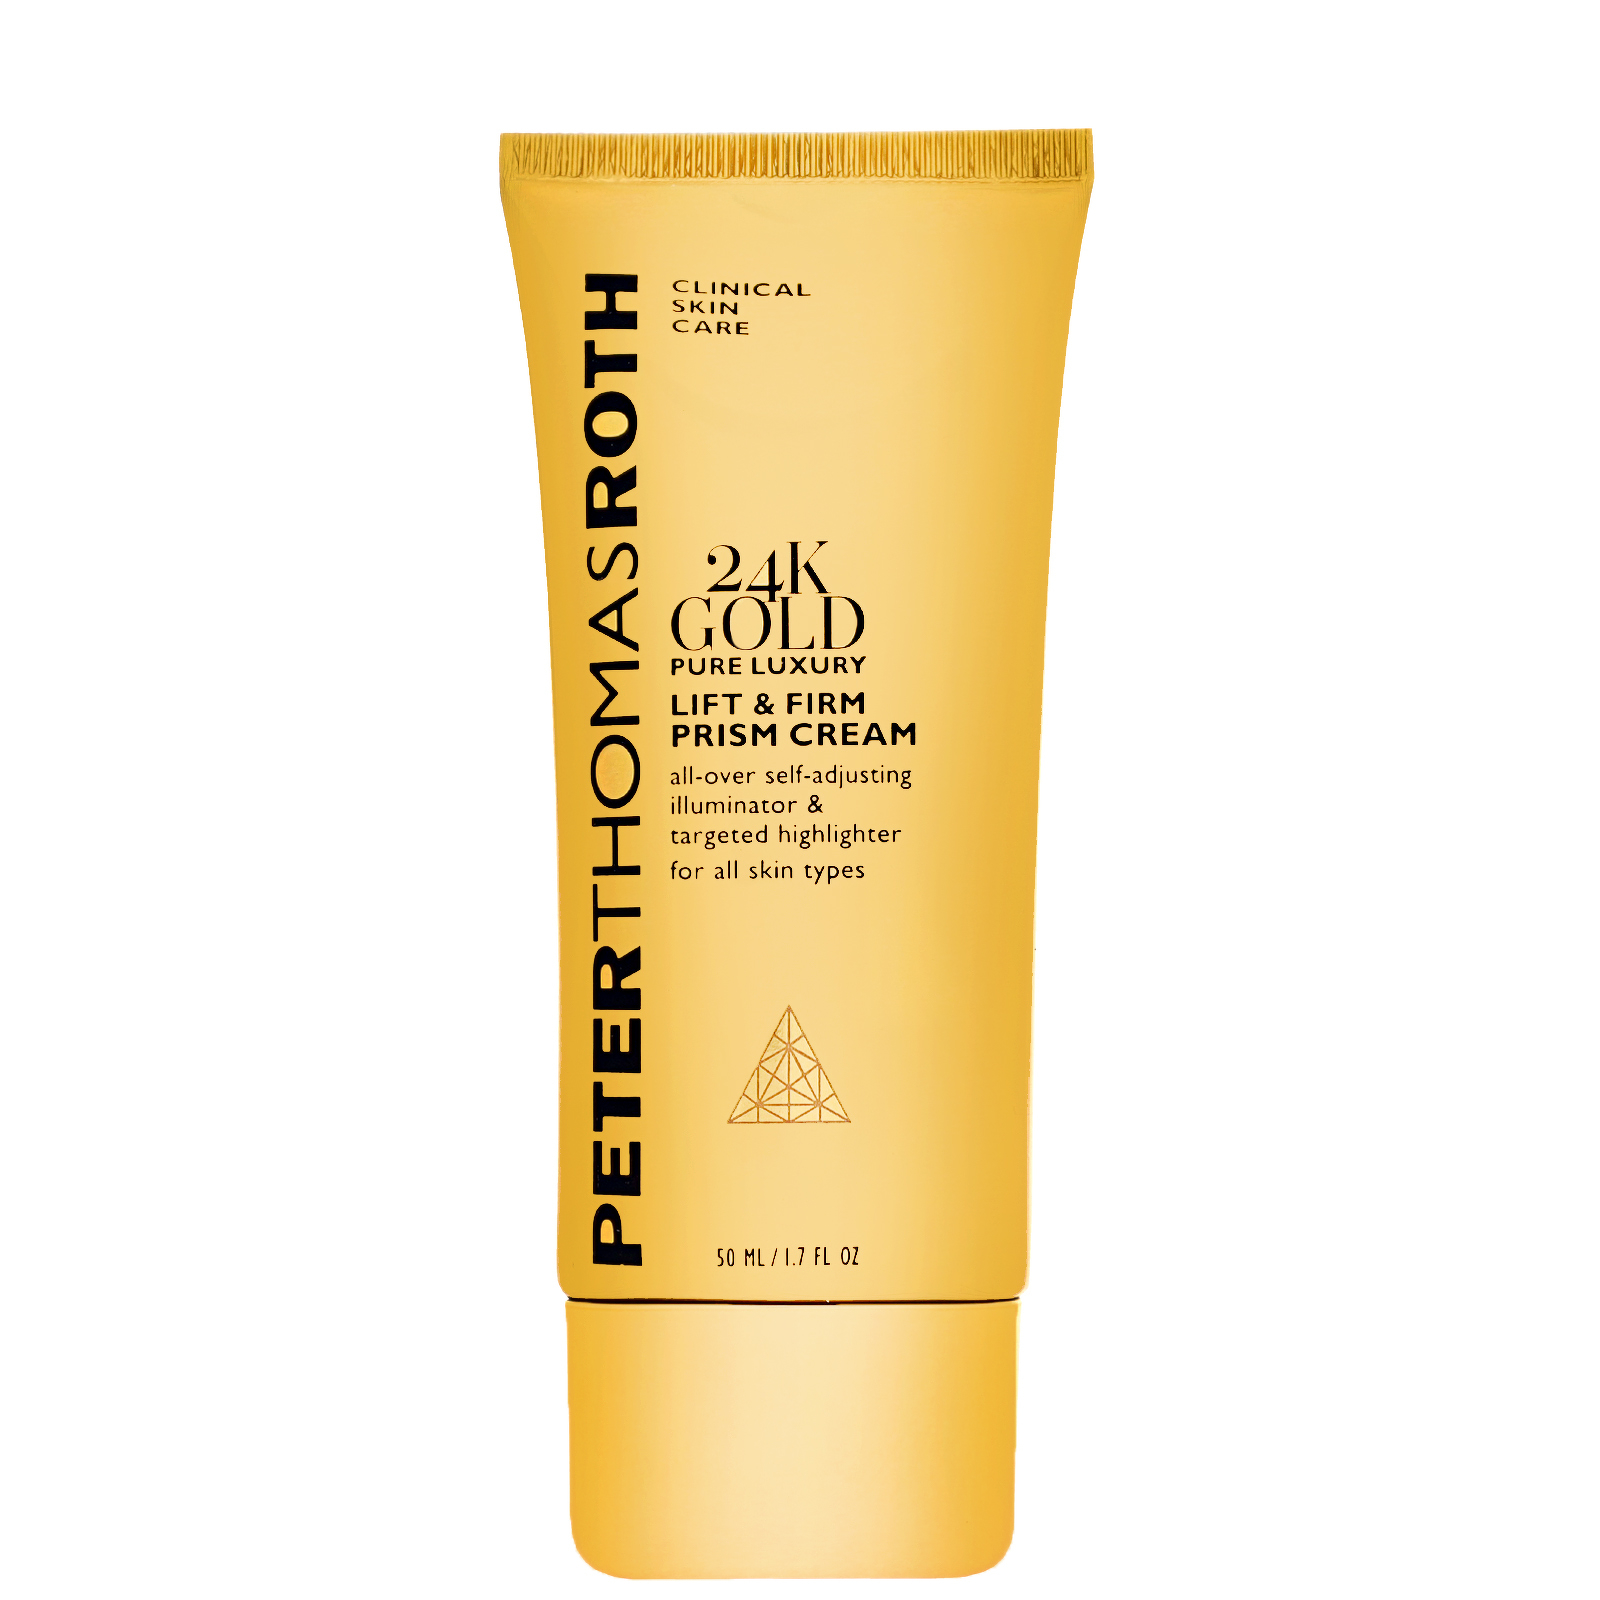 Peter Thomas Roth 24K Gold Pure Luxury Lift & Firm Prism Cream 50ml